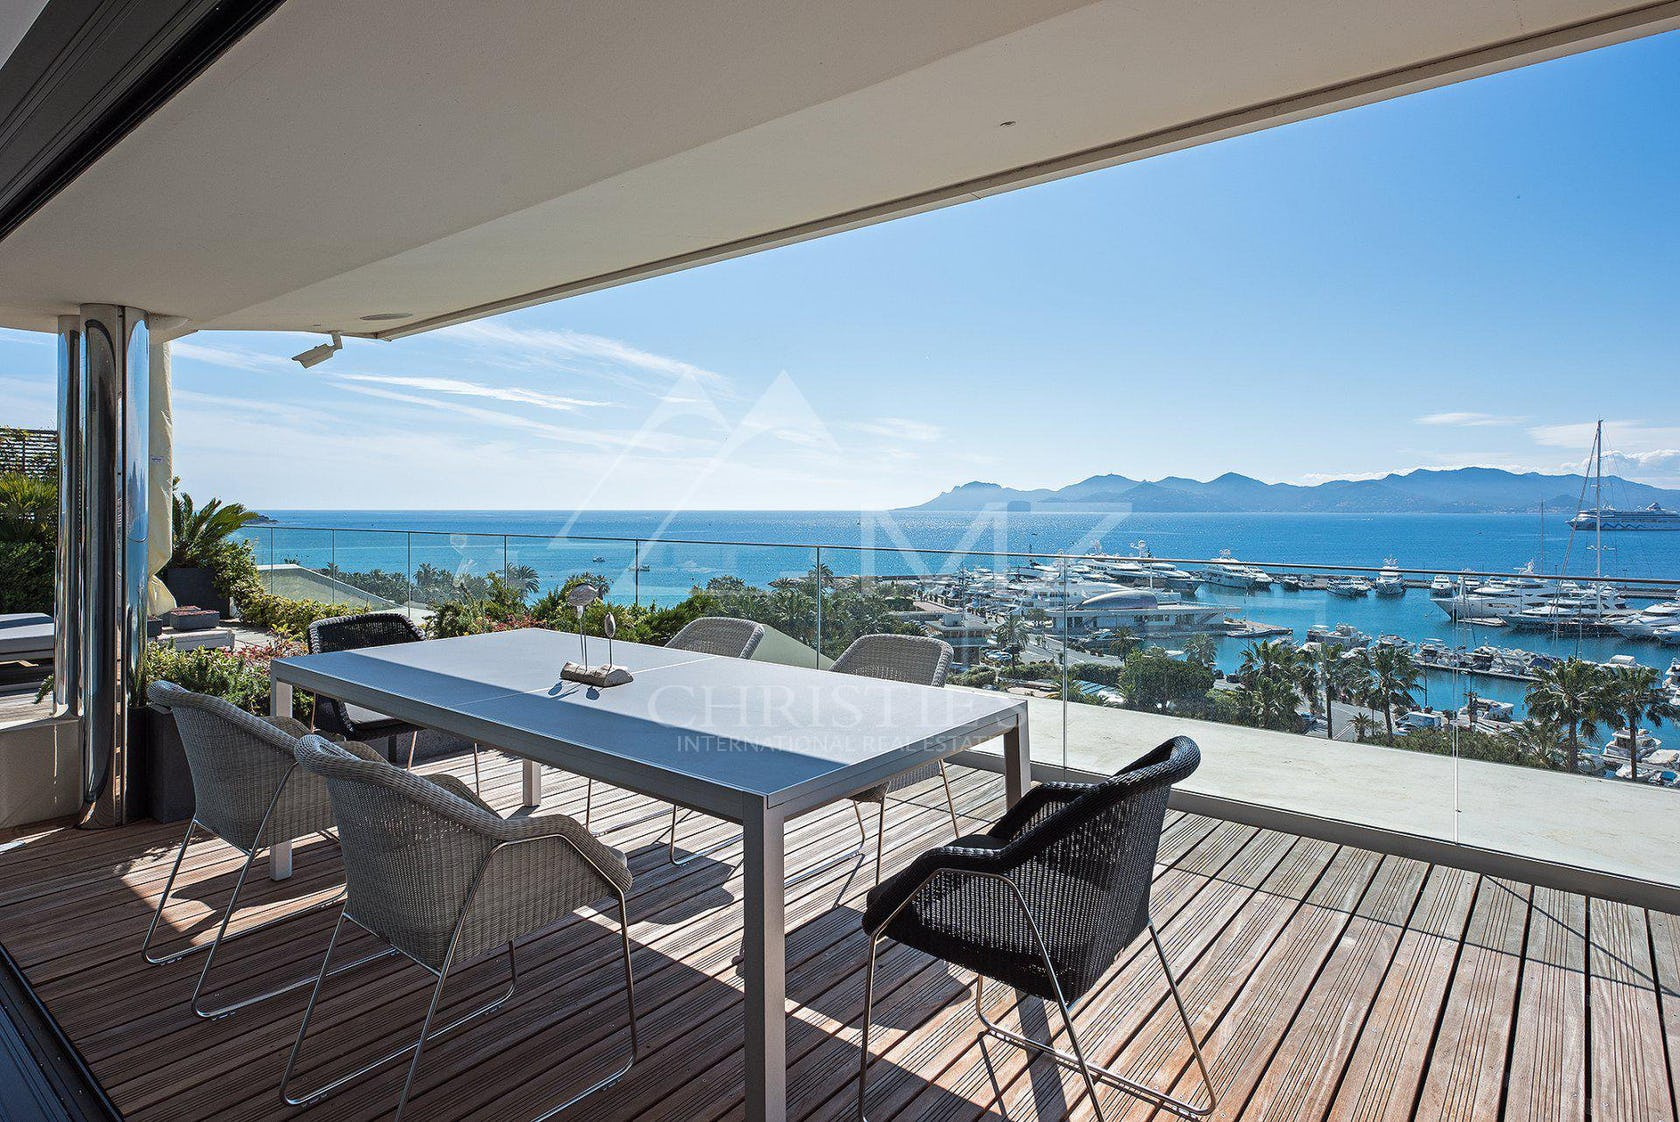 balcony dining table furniture table chair patio